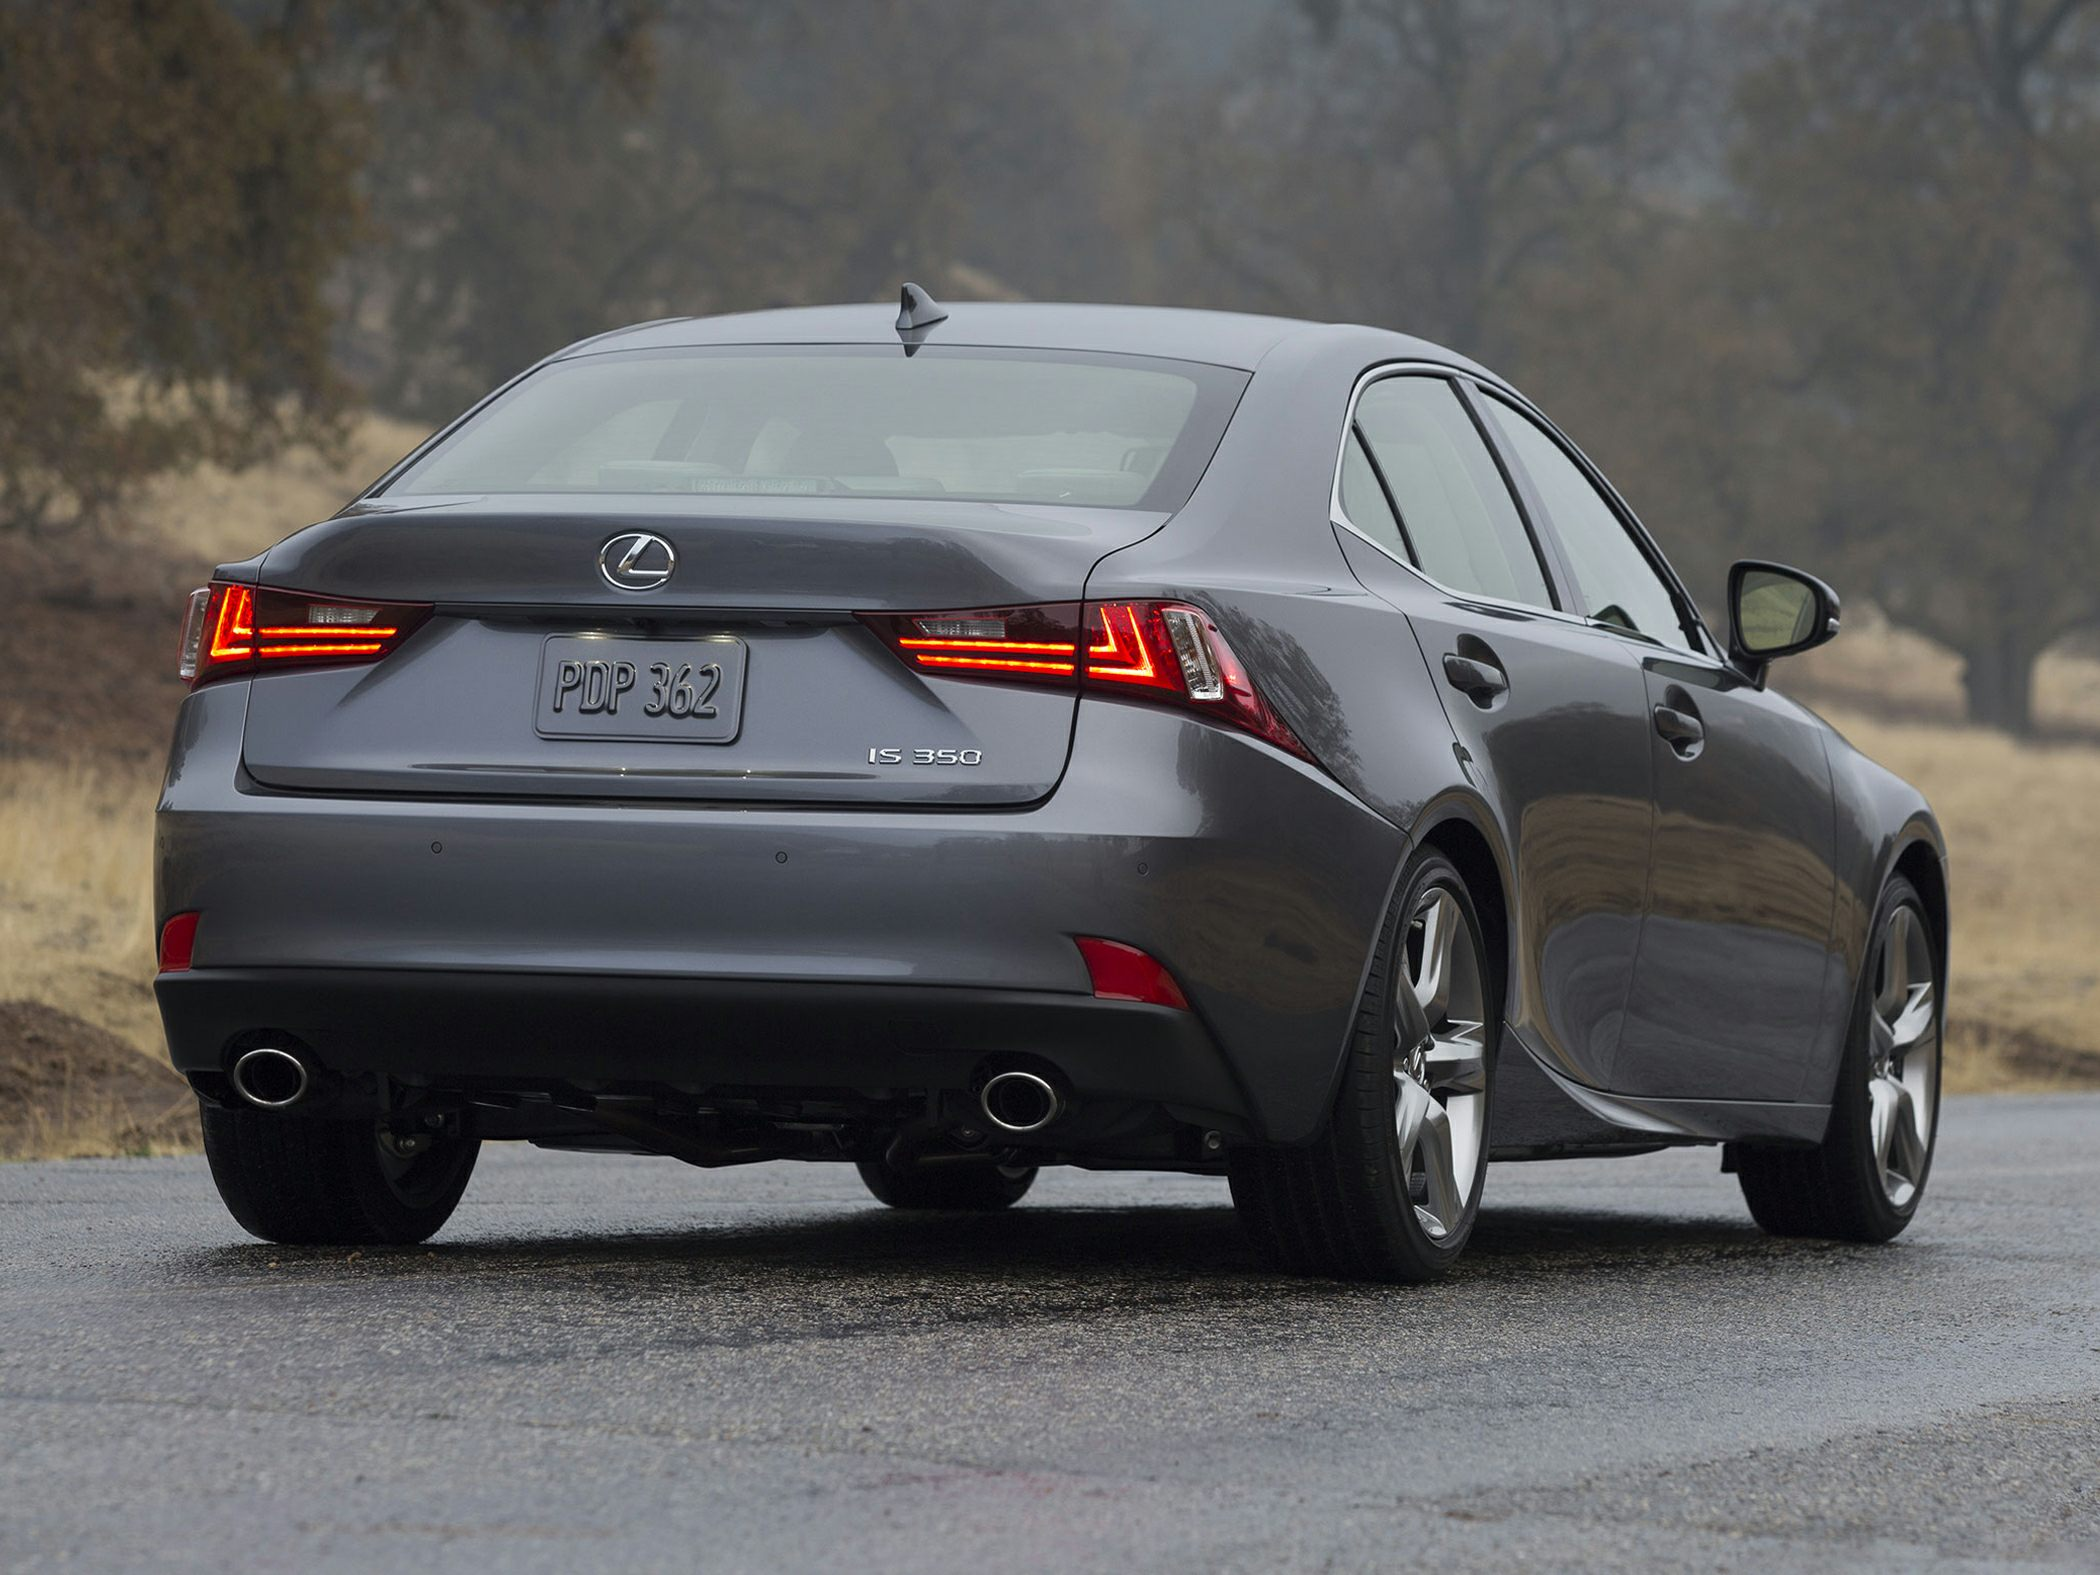 2014 Lexus IS 350 Glam2